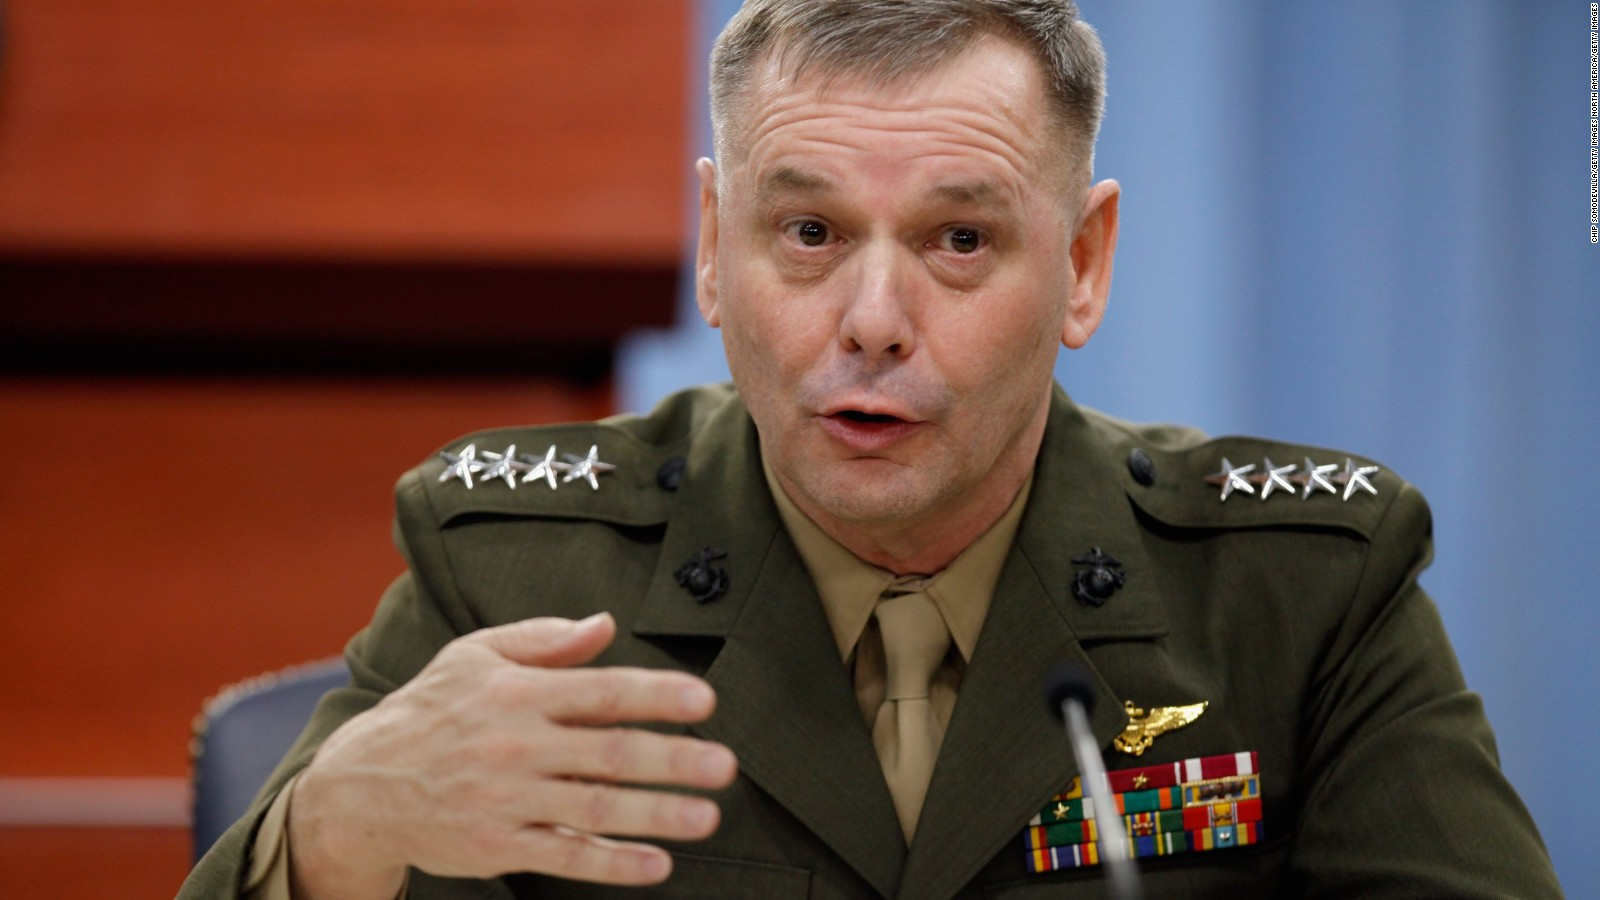 retired four star general pleads guilty to leaking classified info